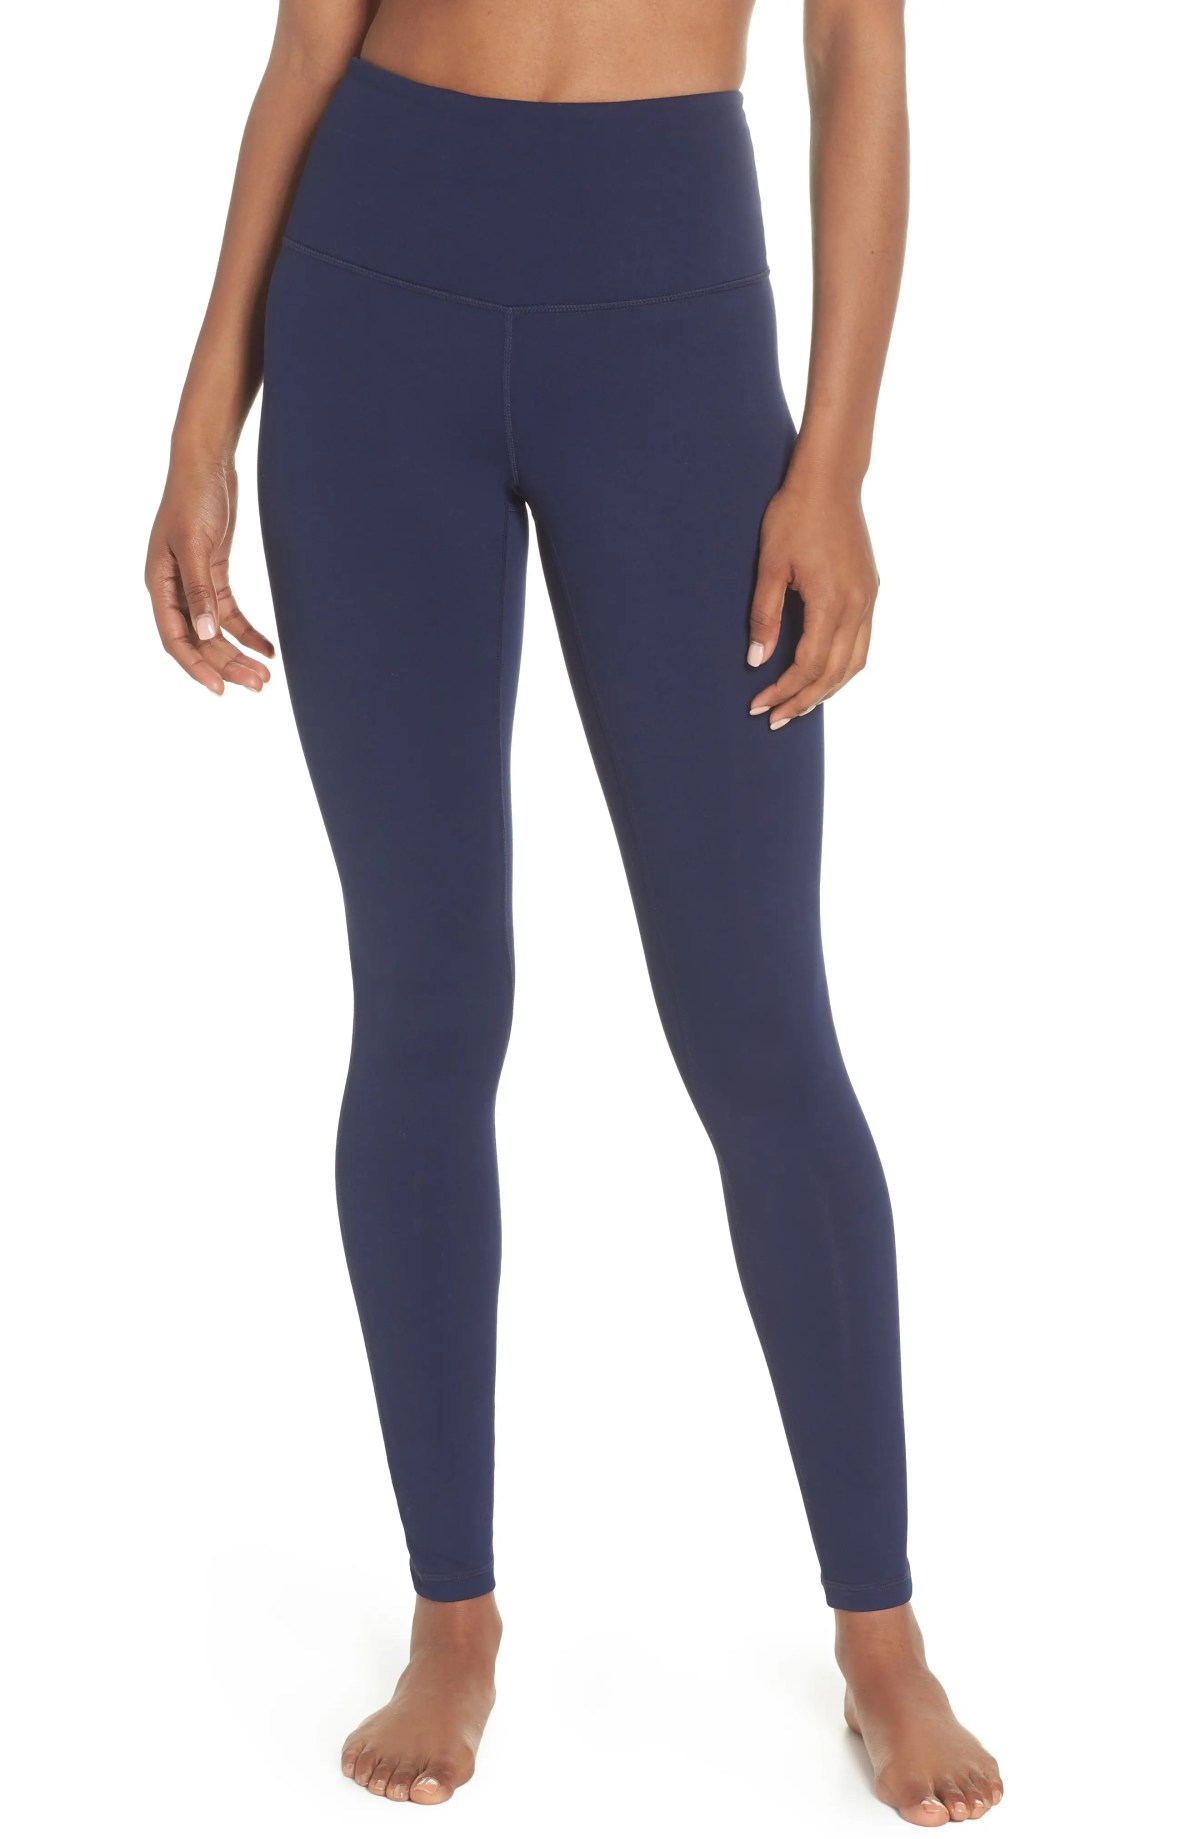 ZELLA Live In High Waist Leggings, Main, color, NAVY MARITIME